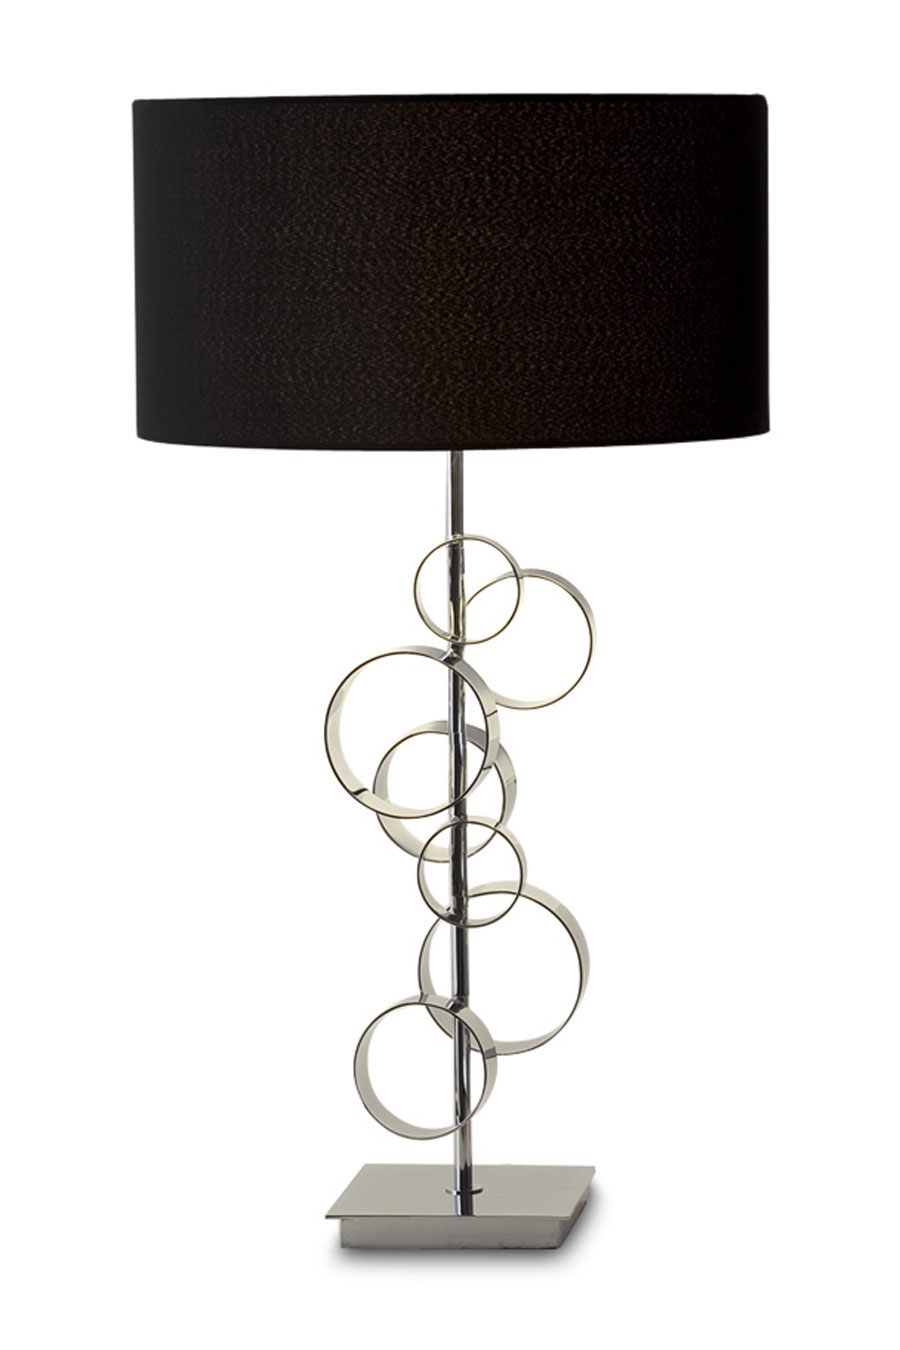 lyon  chrome and black designer table lamp with bubblelike  - lyon  chrome and black designer table lamp with bubblelike circles  faro